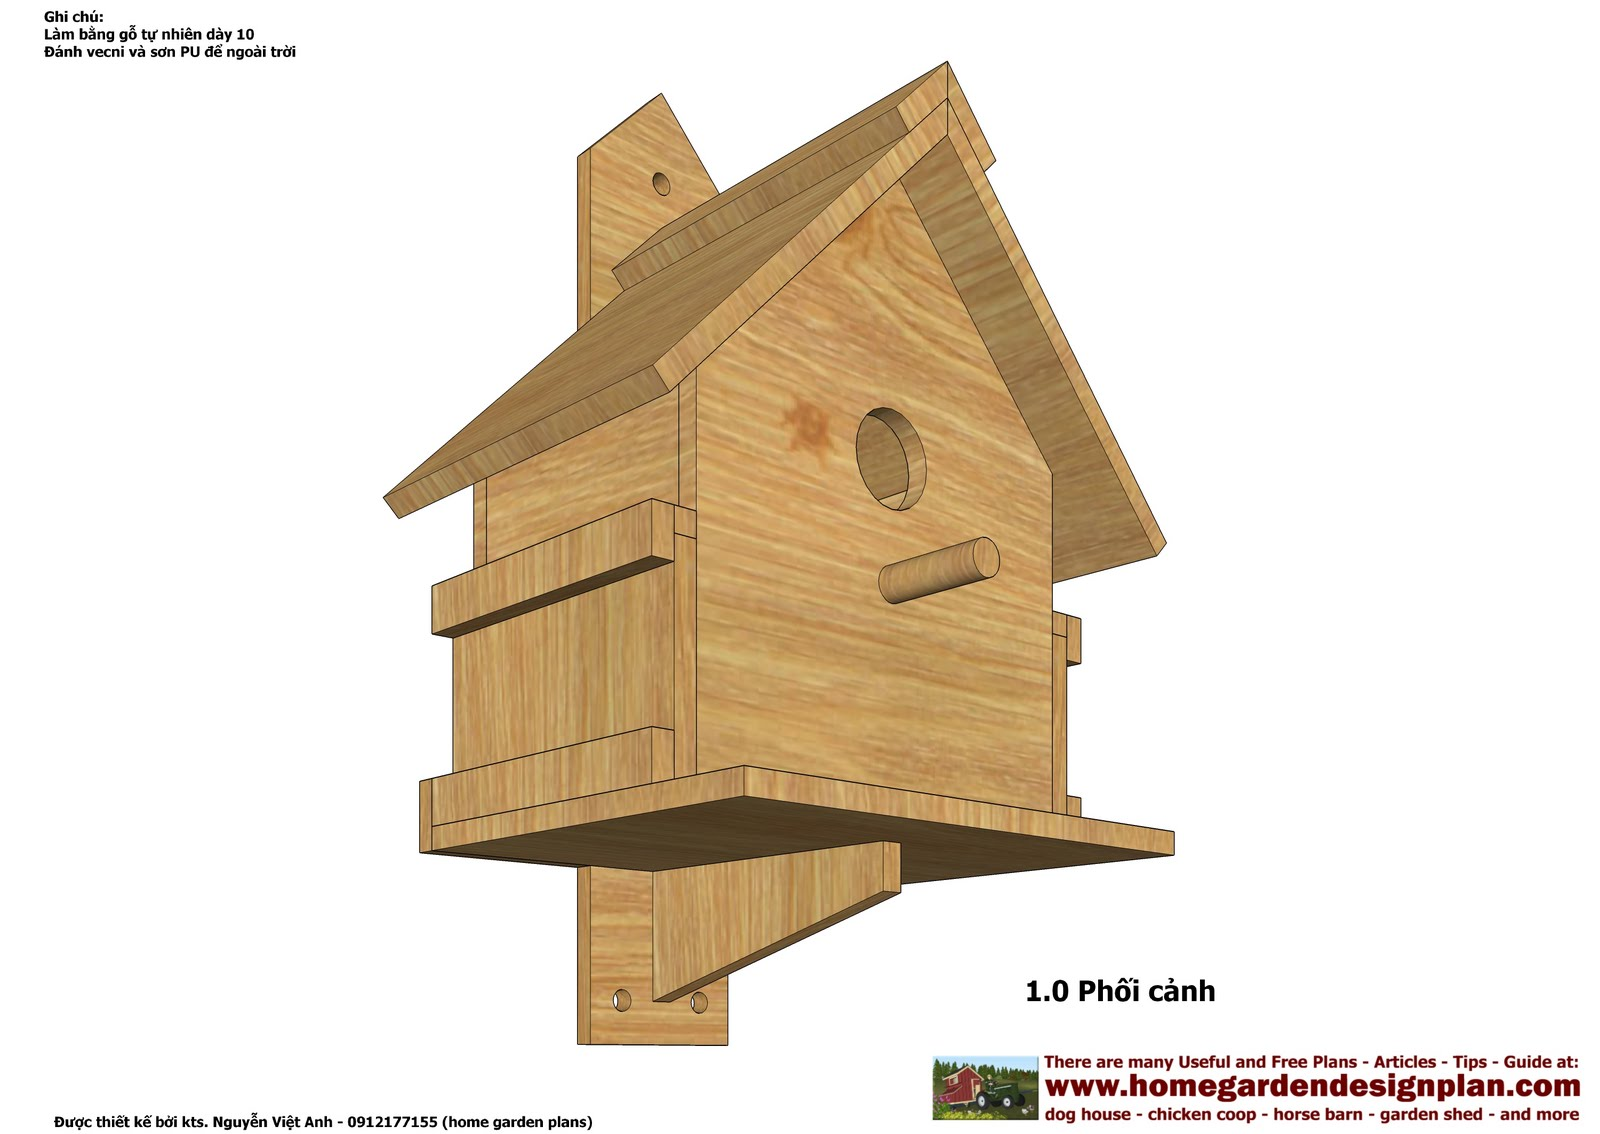 Home garden plans bh100 bird house plans construction for Make a house plan